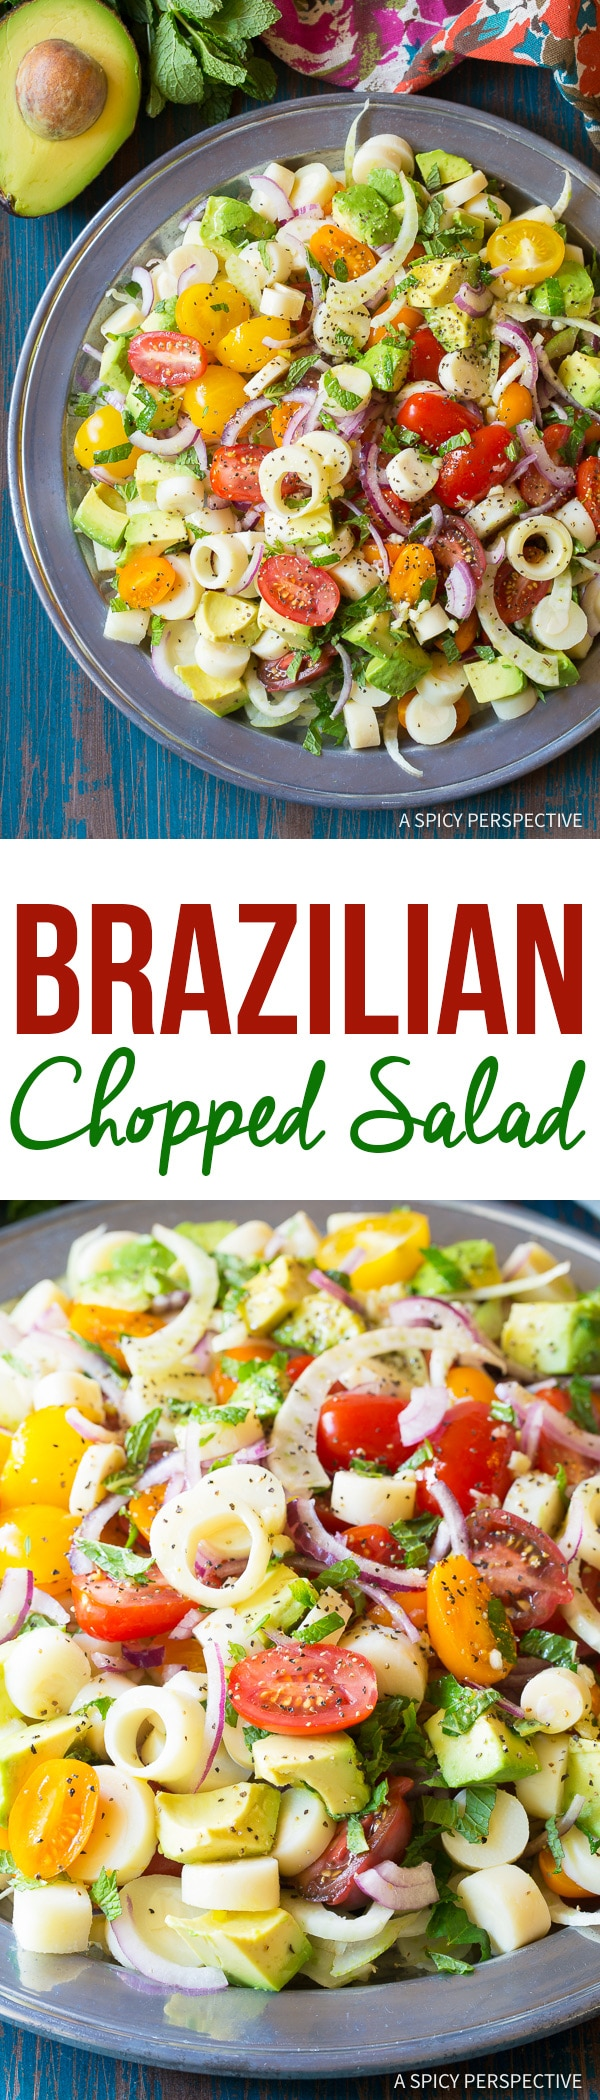 Healthy Brazilian Chopped Salad Recipe